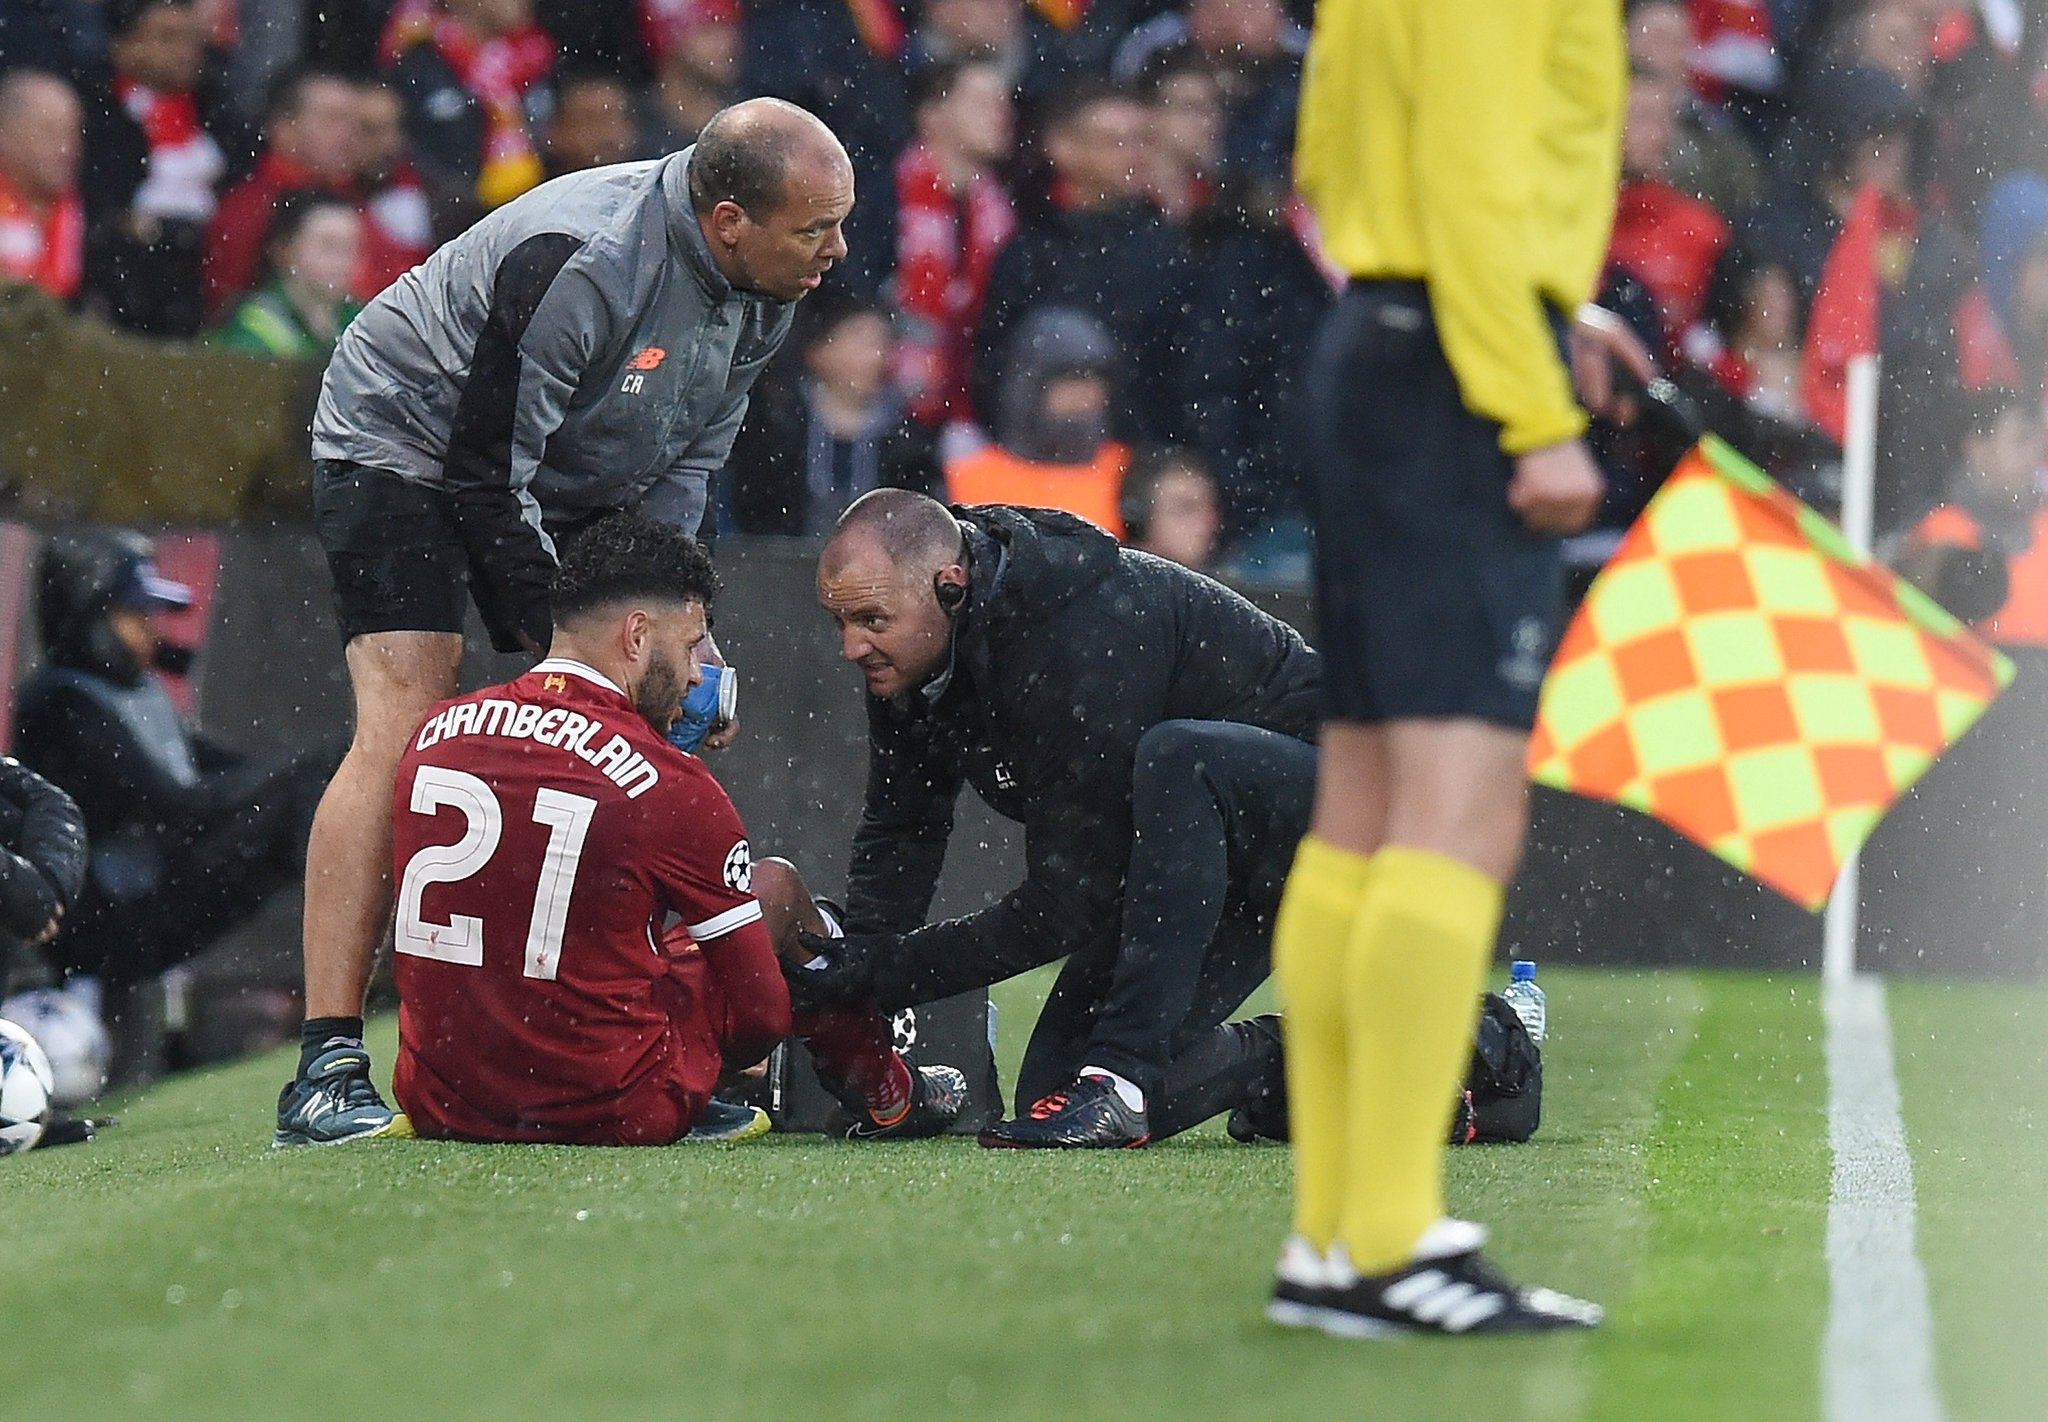 Injury update on Alex Oxlade-Chamberlain: https://t.co/Gn5yRbf17Q https://t.co/7s7vPGrRyr